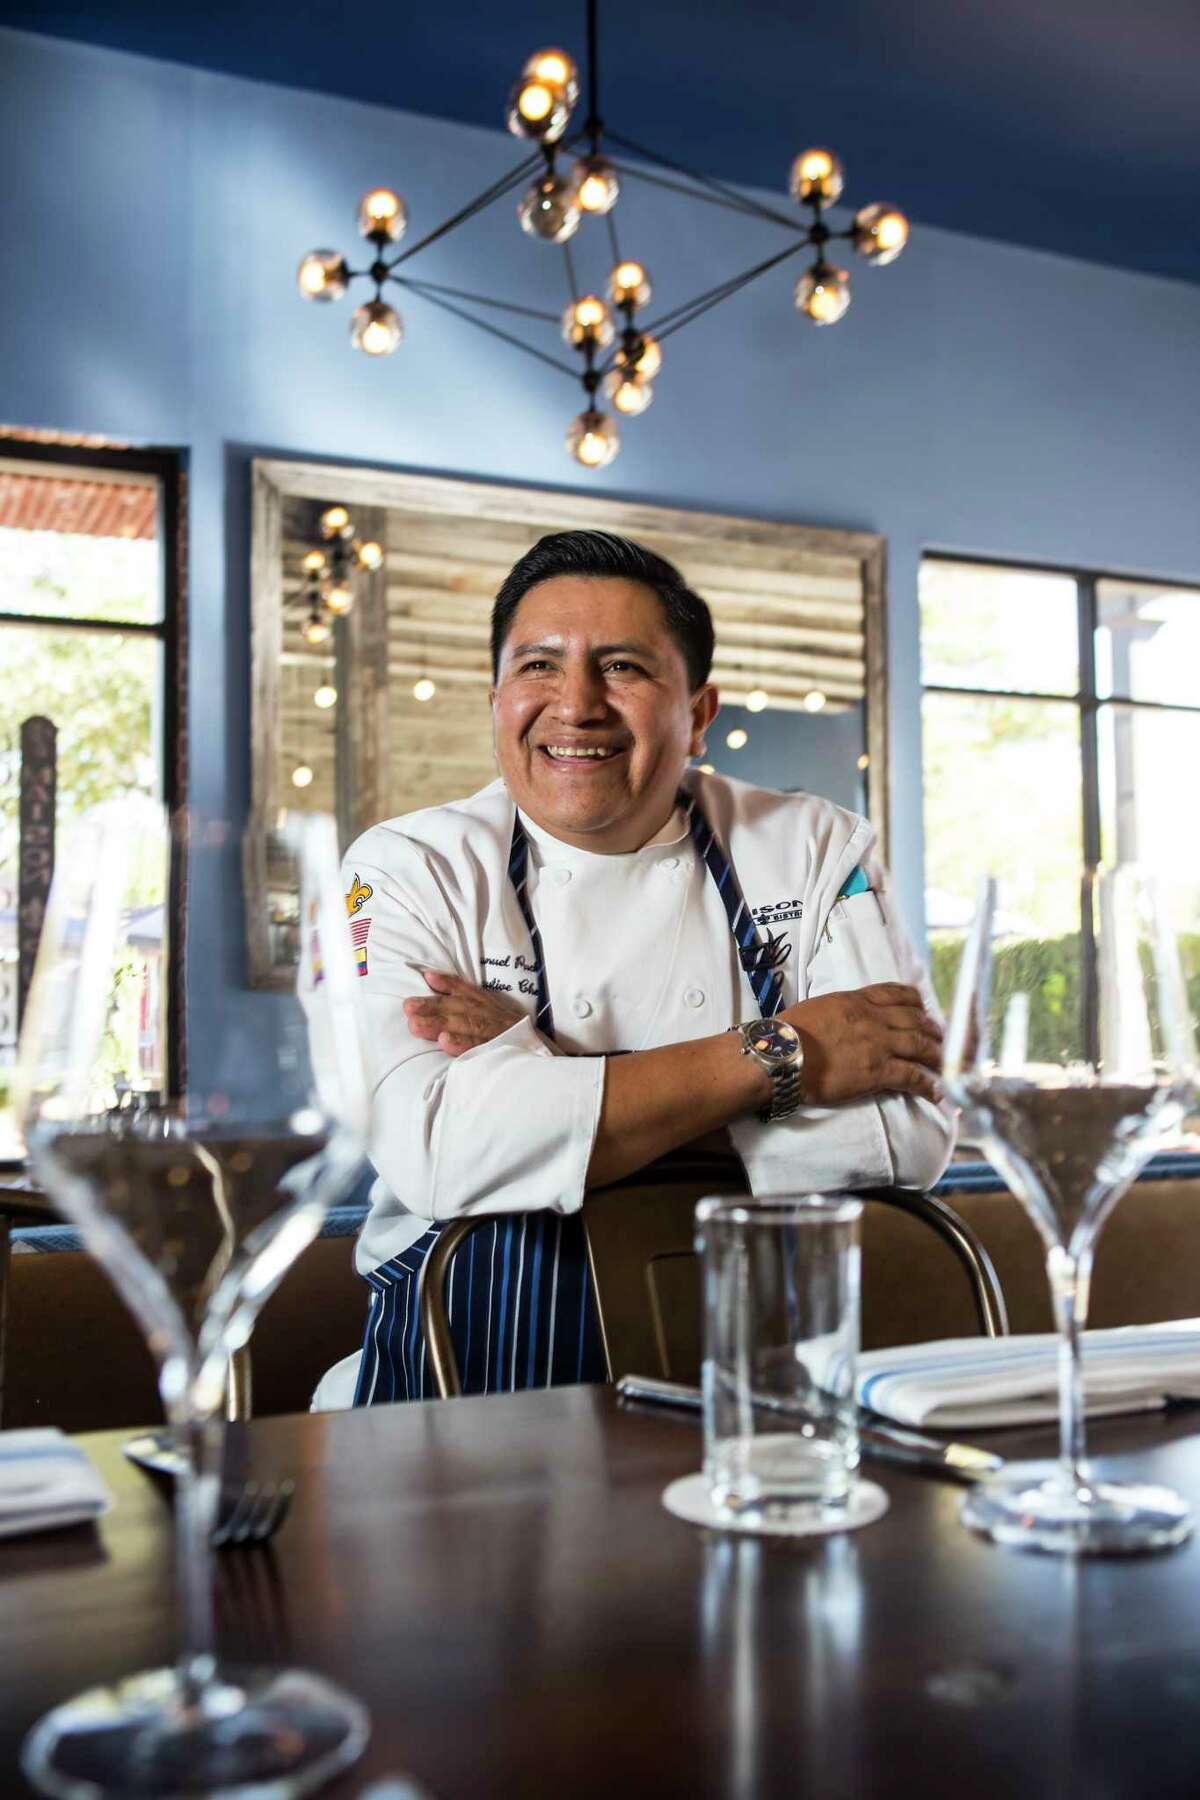 Executive chef Manuel Pucha has opened his first restaurant, Maison Pucha Bistro in the Heights.